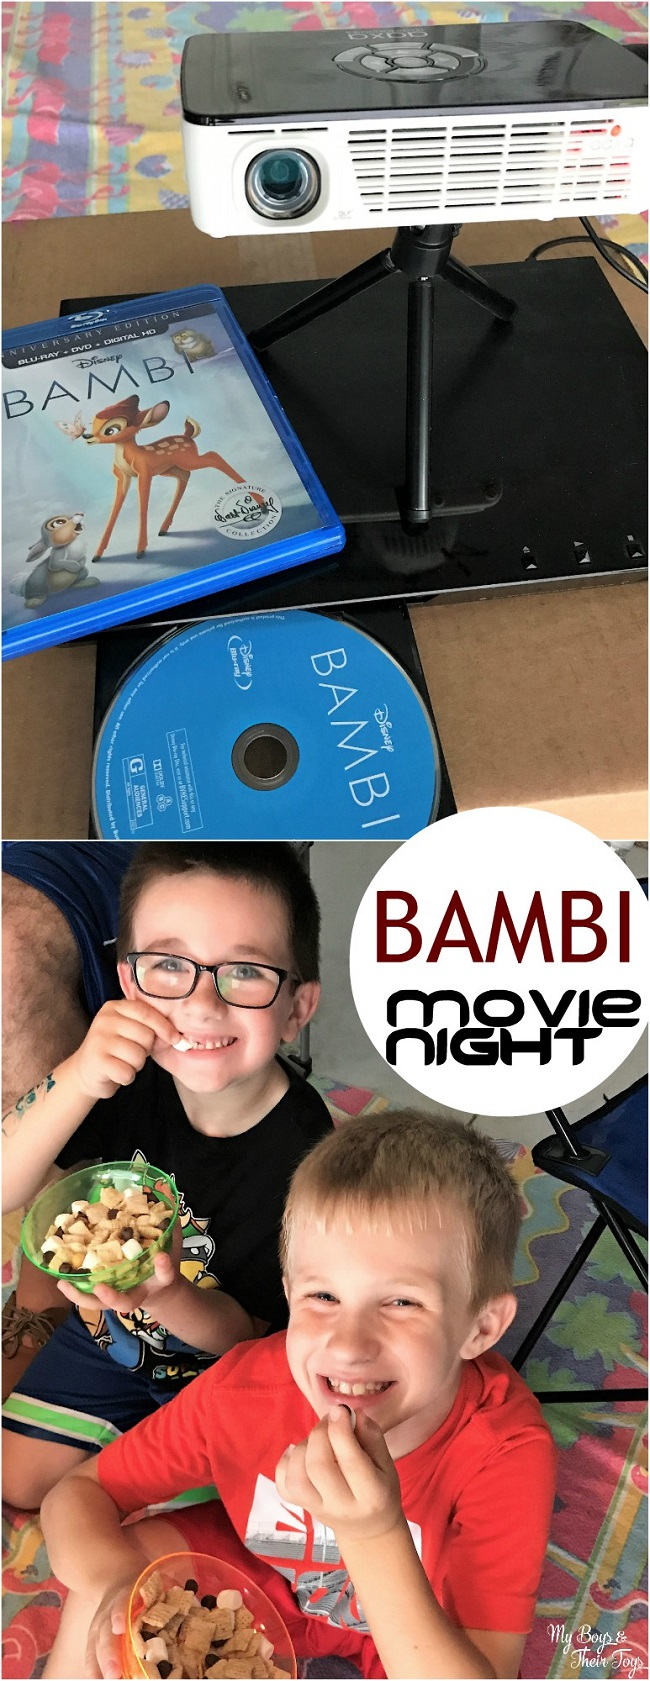 bambi movie night